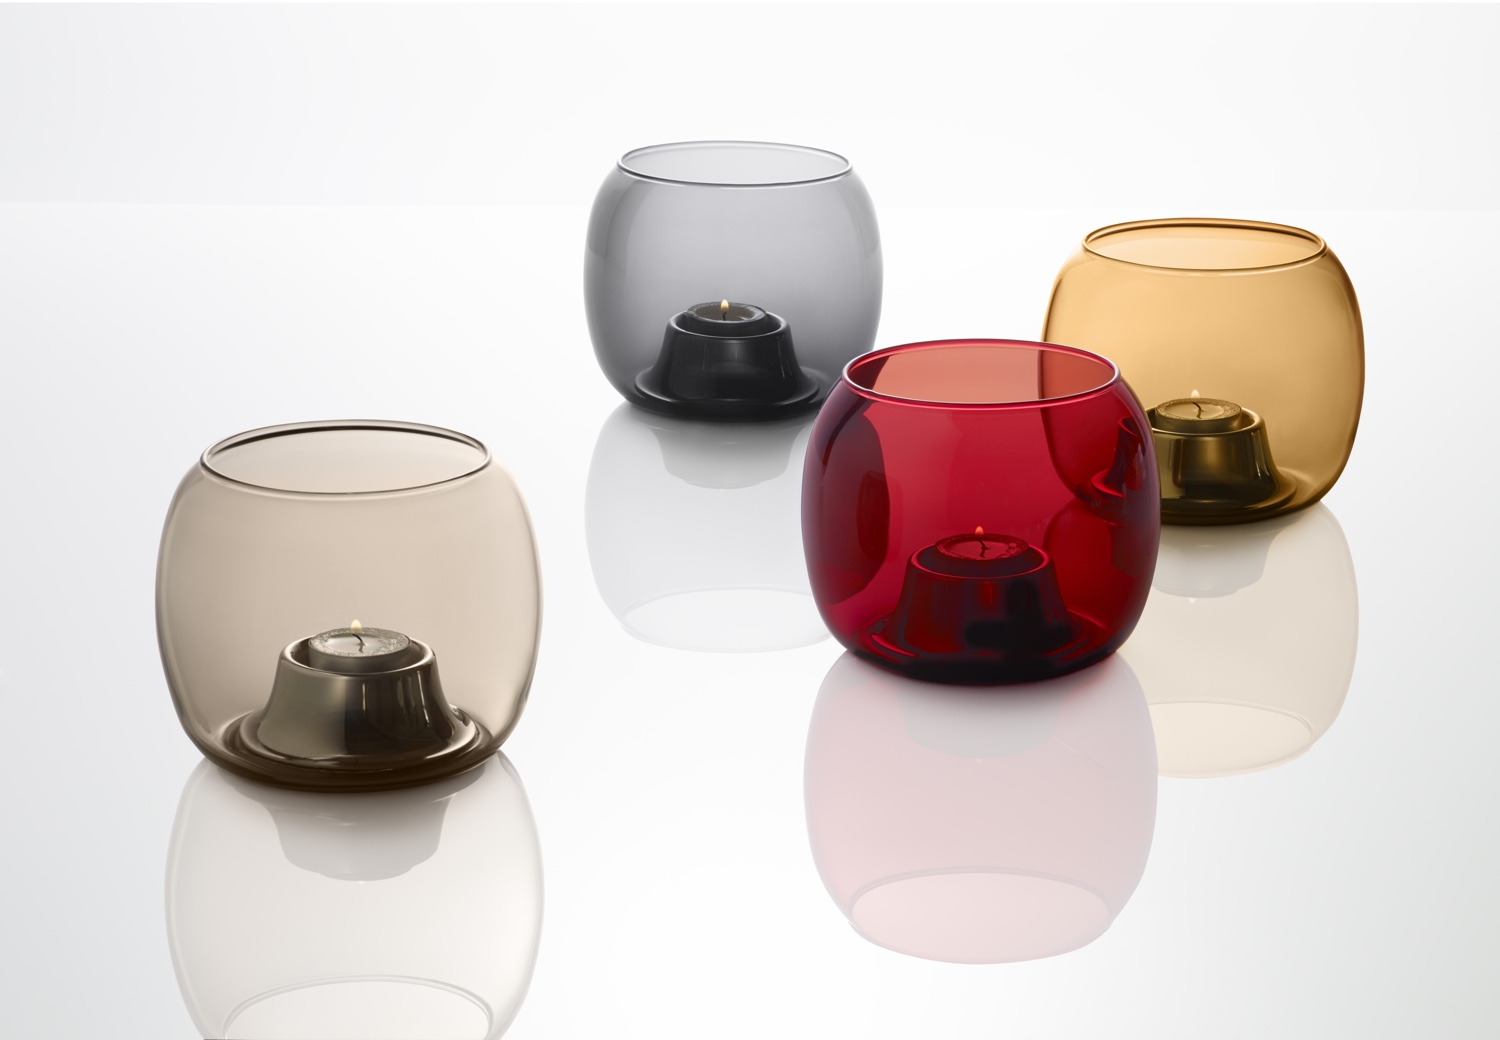 Kaasa Tealight candleholders by Ilkka Suppanen for Iittala. Image © Fiskars Finland.